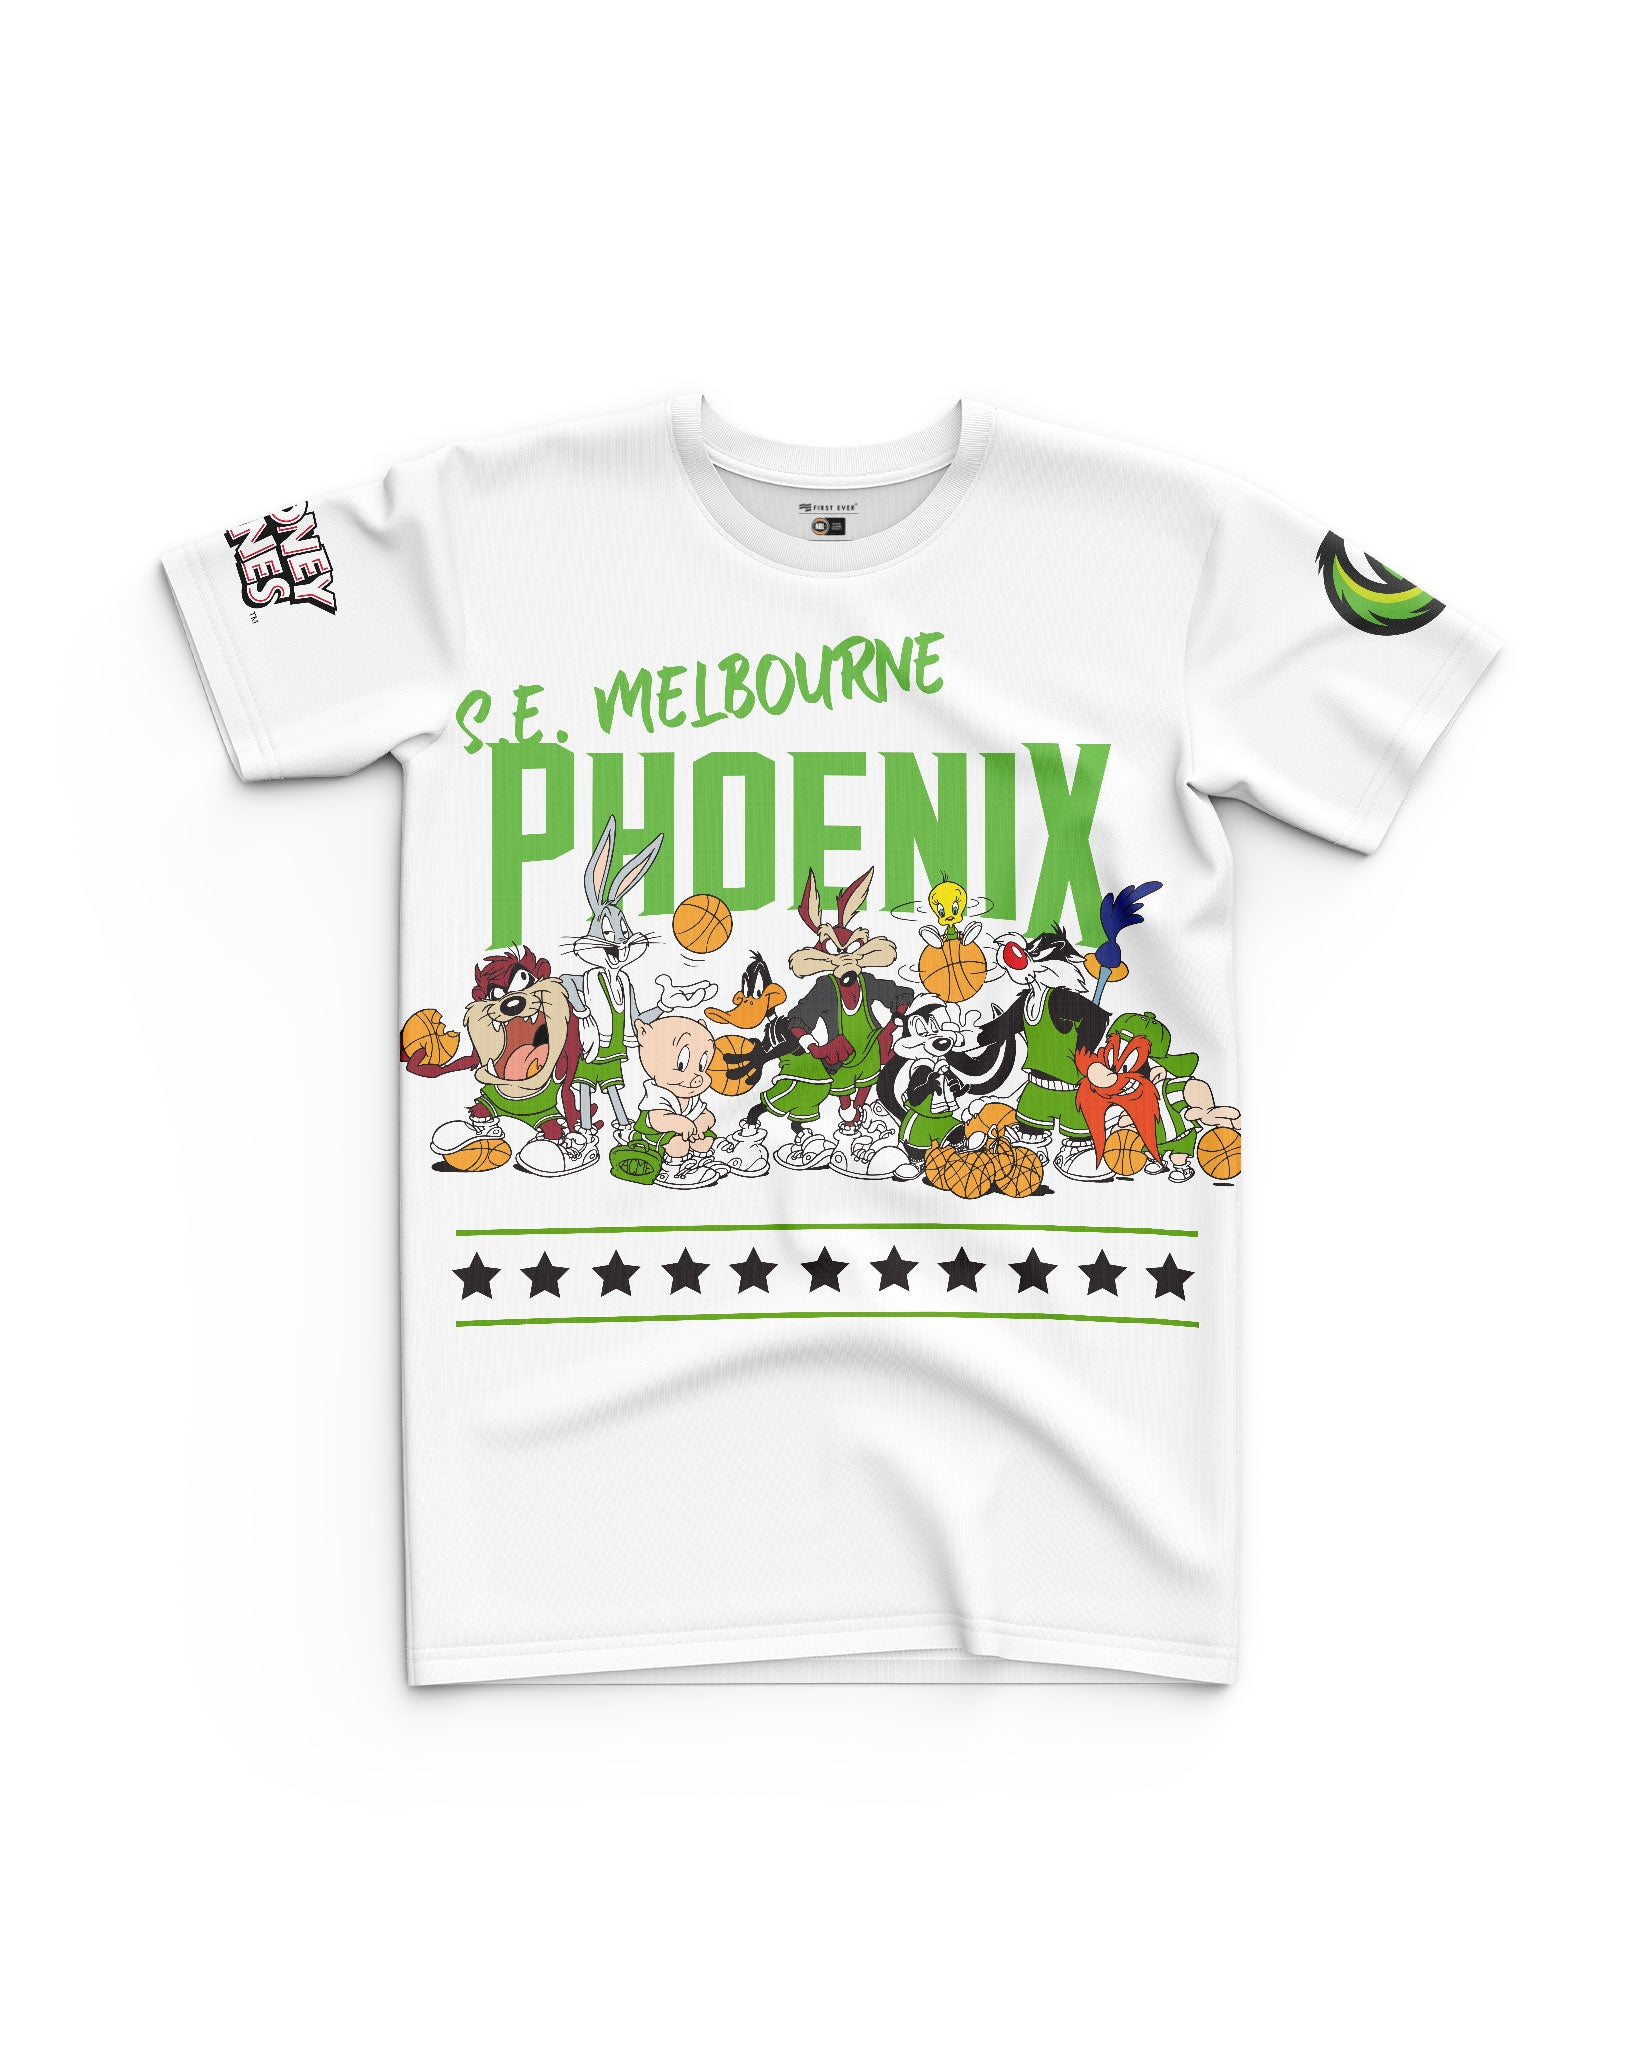 S.E. Melbourne Phoenix 20/21 Looney Tunes Youth Squad Tee - Personalised